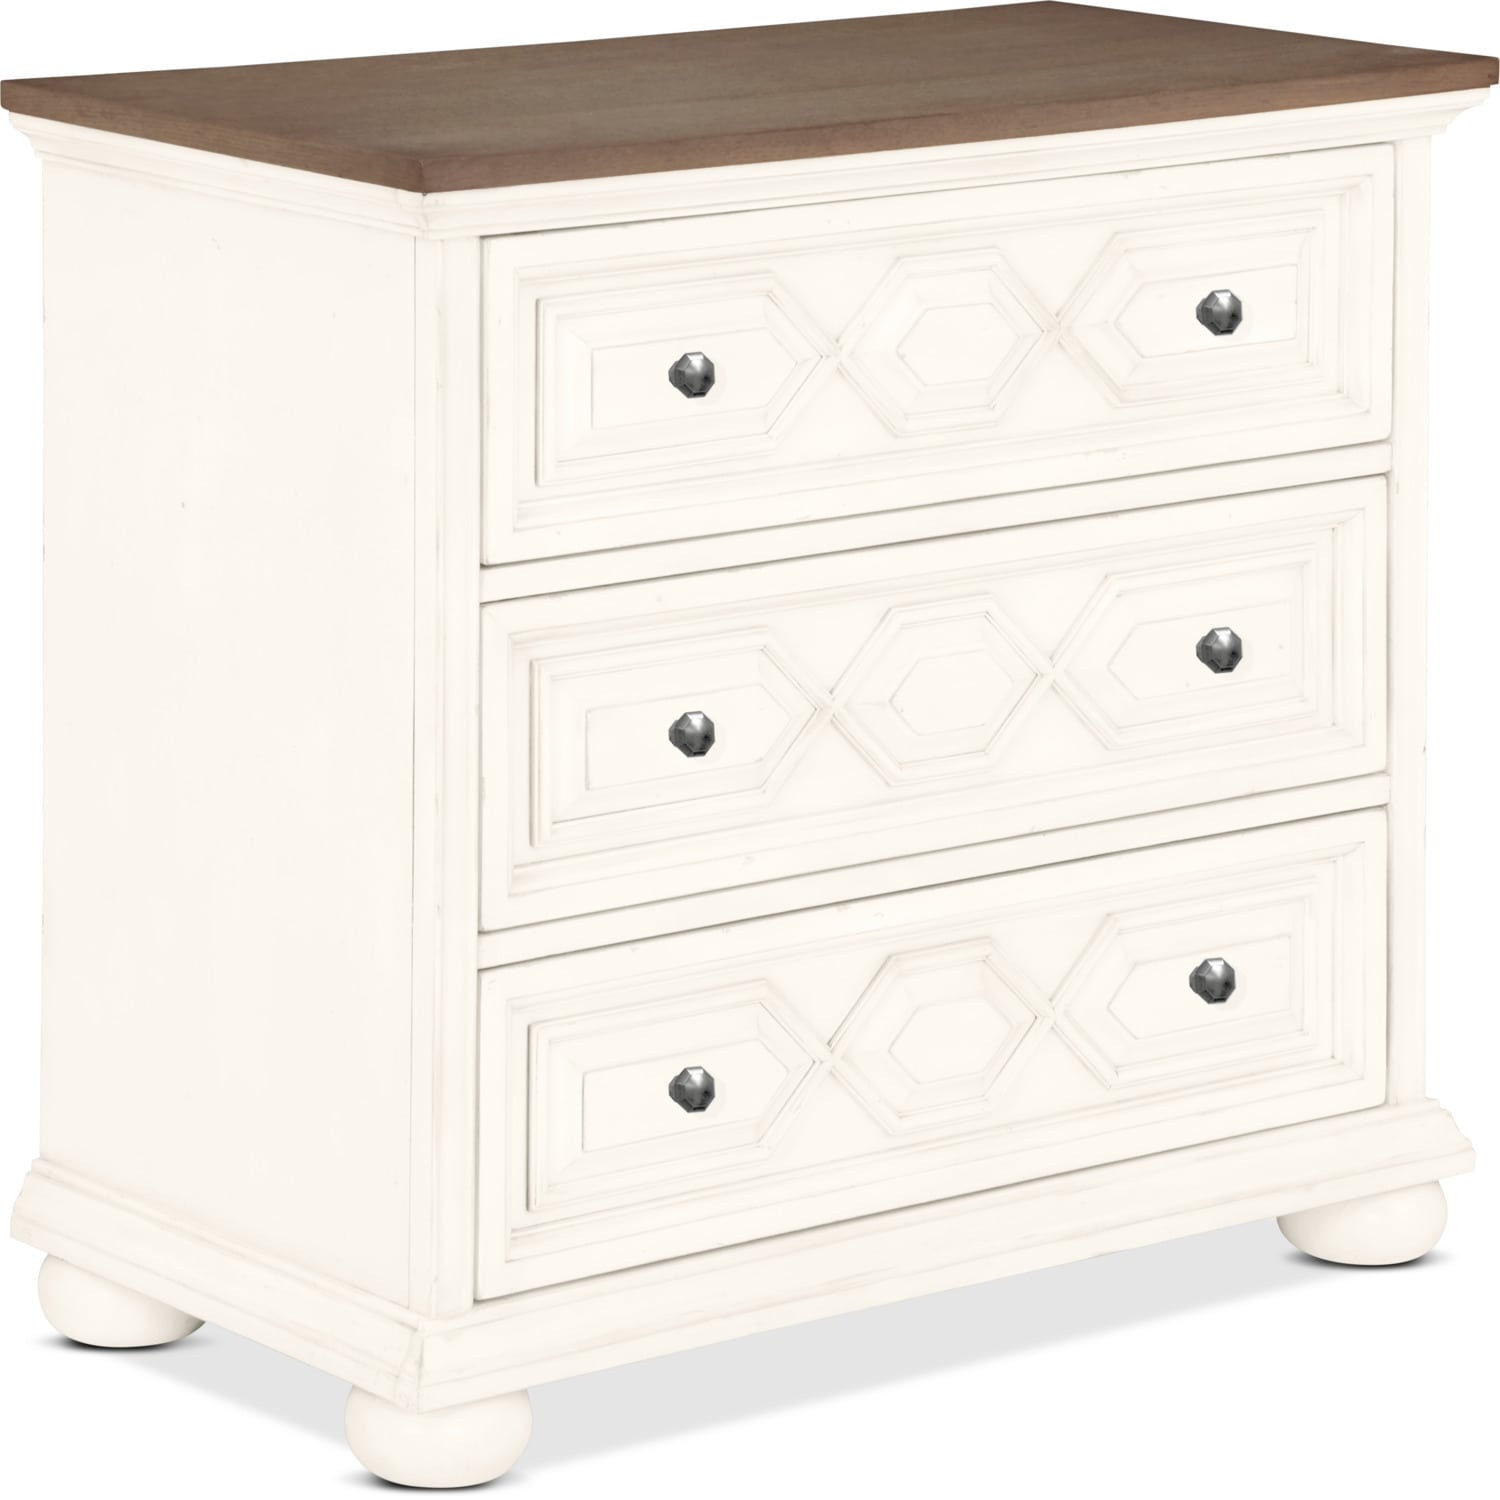 Bedroom Furniture - Hancock Park Bachelor Nightstand